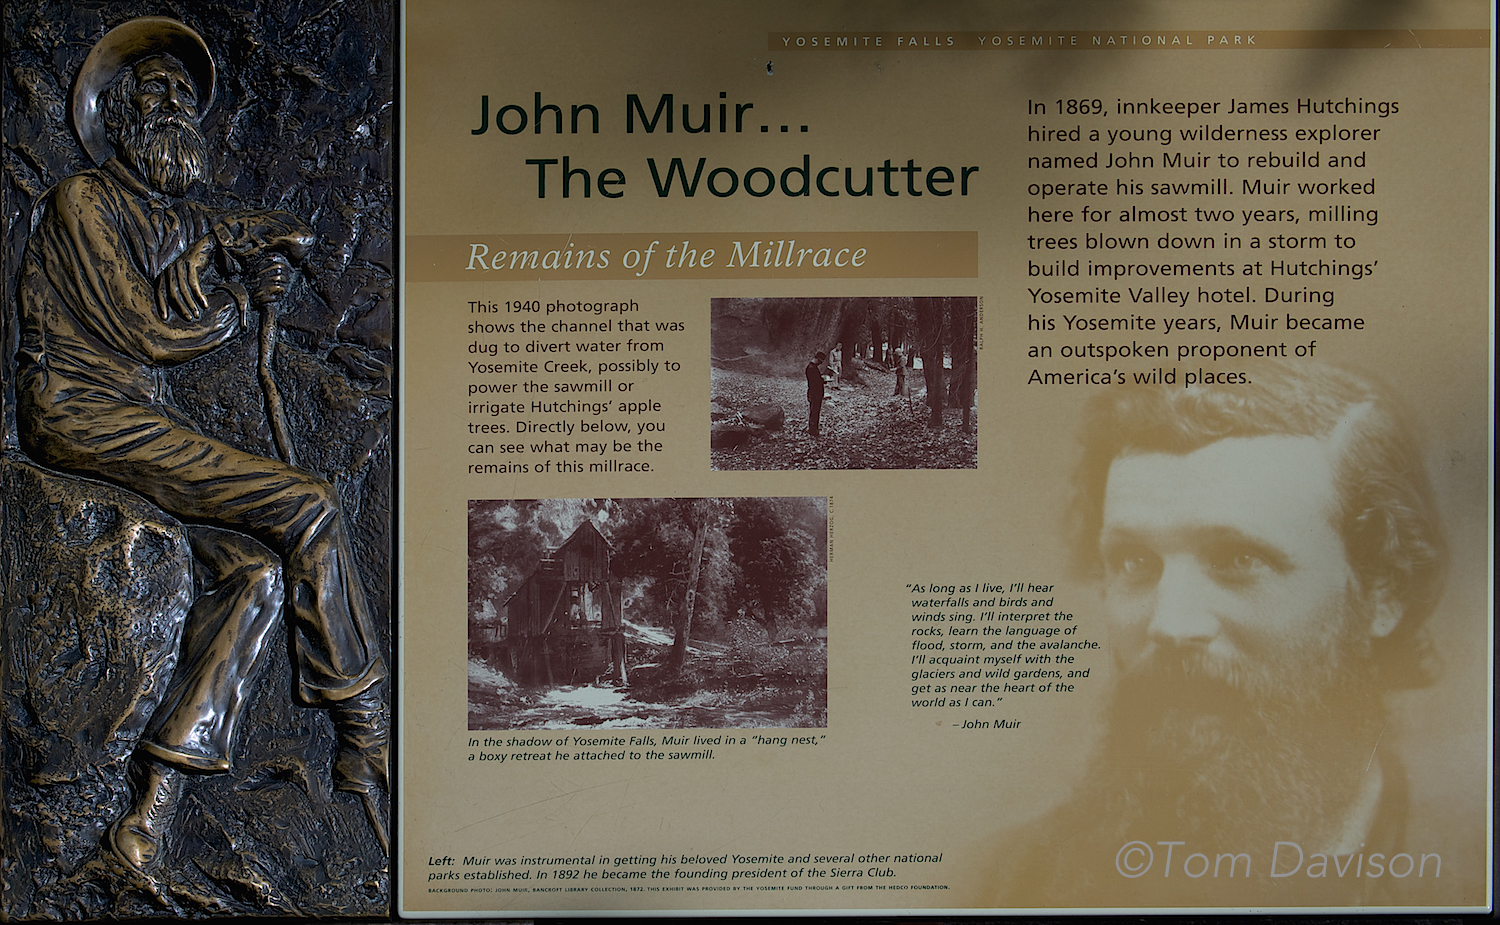 We owe a great deal to John Muir.